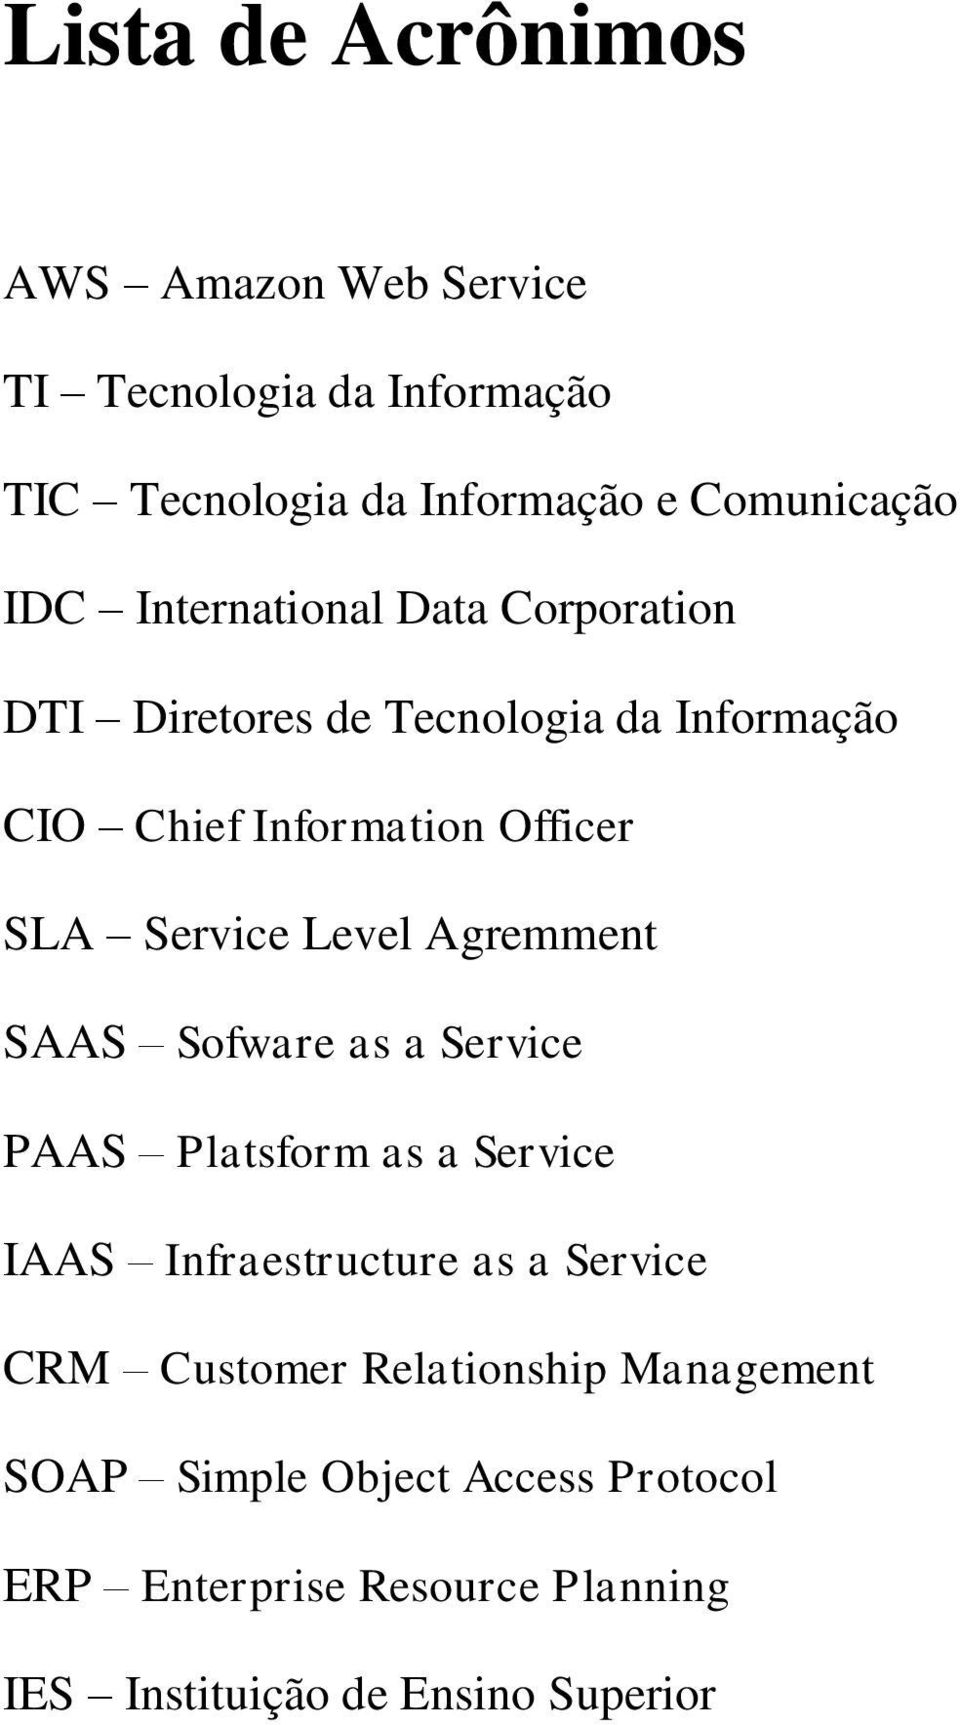 Level Agremment SAAS Sofware as a Service PAAS Platsform as a Service IAAS Infraestructure as a Service CRM Customer